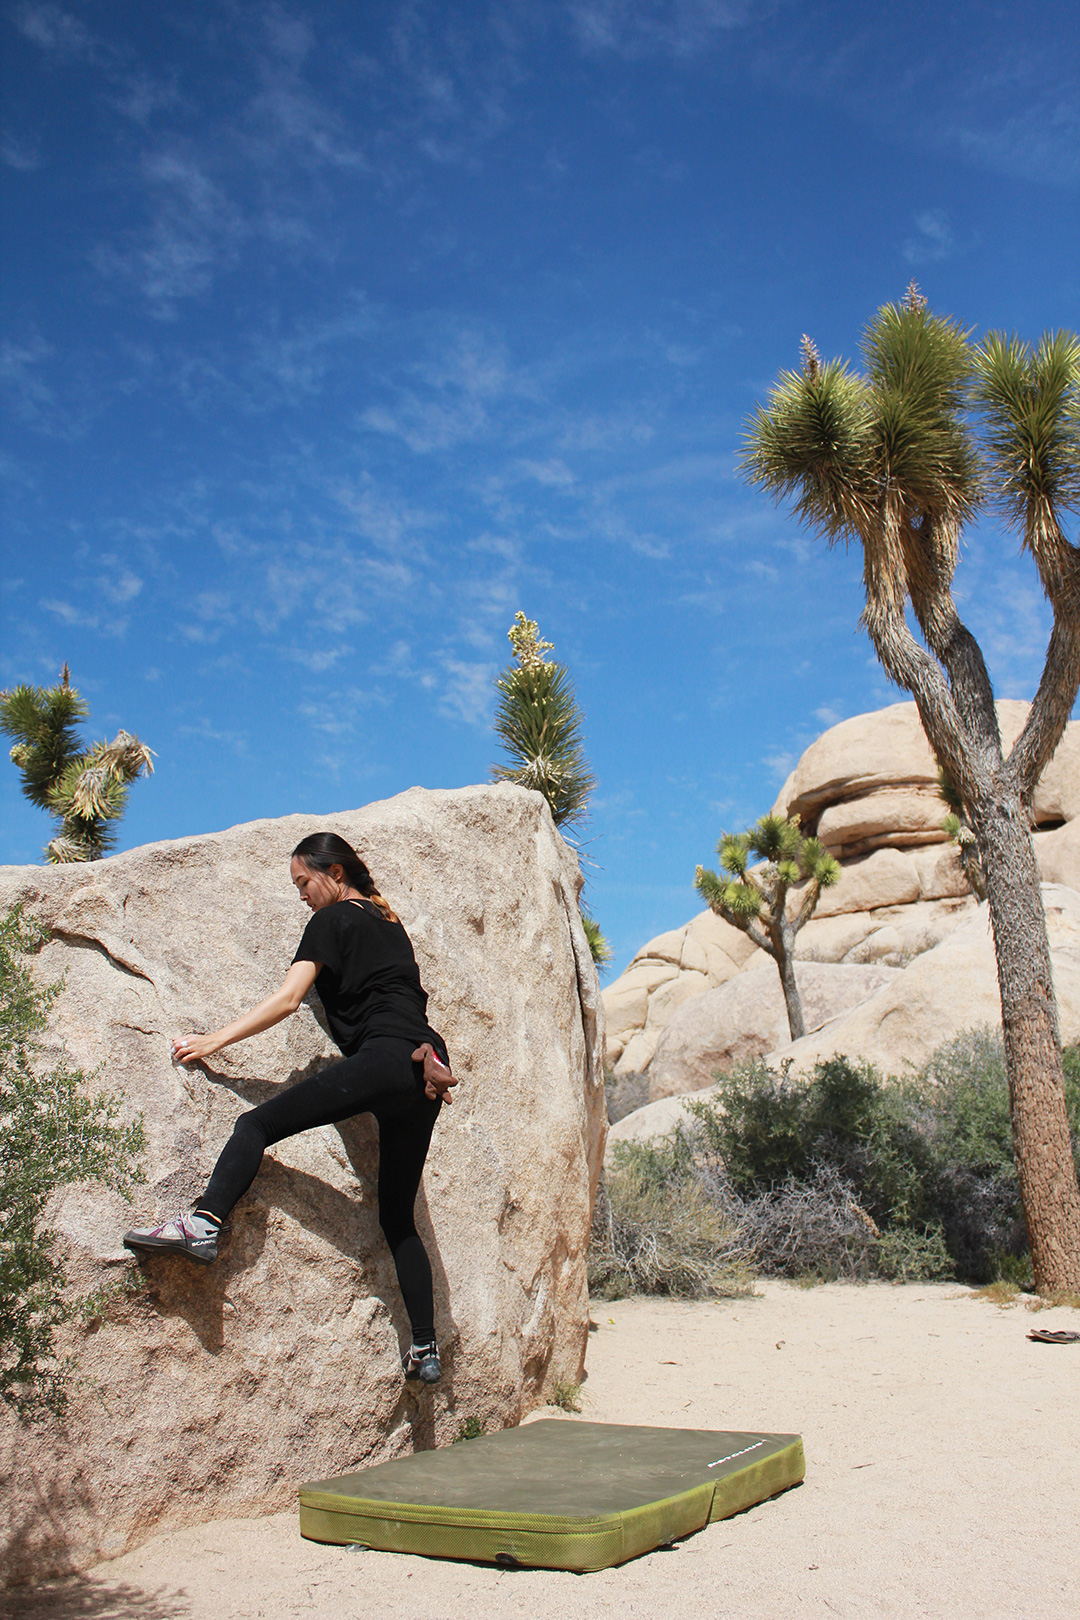 Rented our crash pad from Joshua Tree Outfitters.